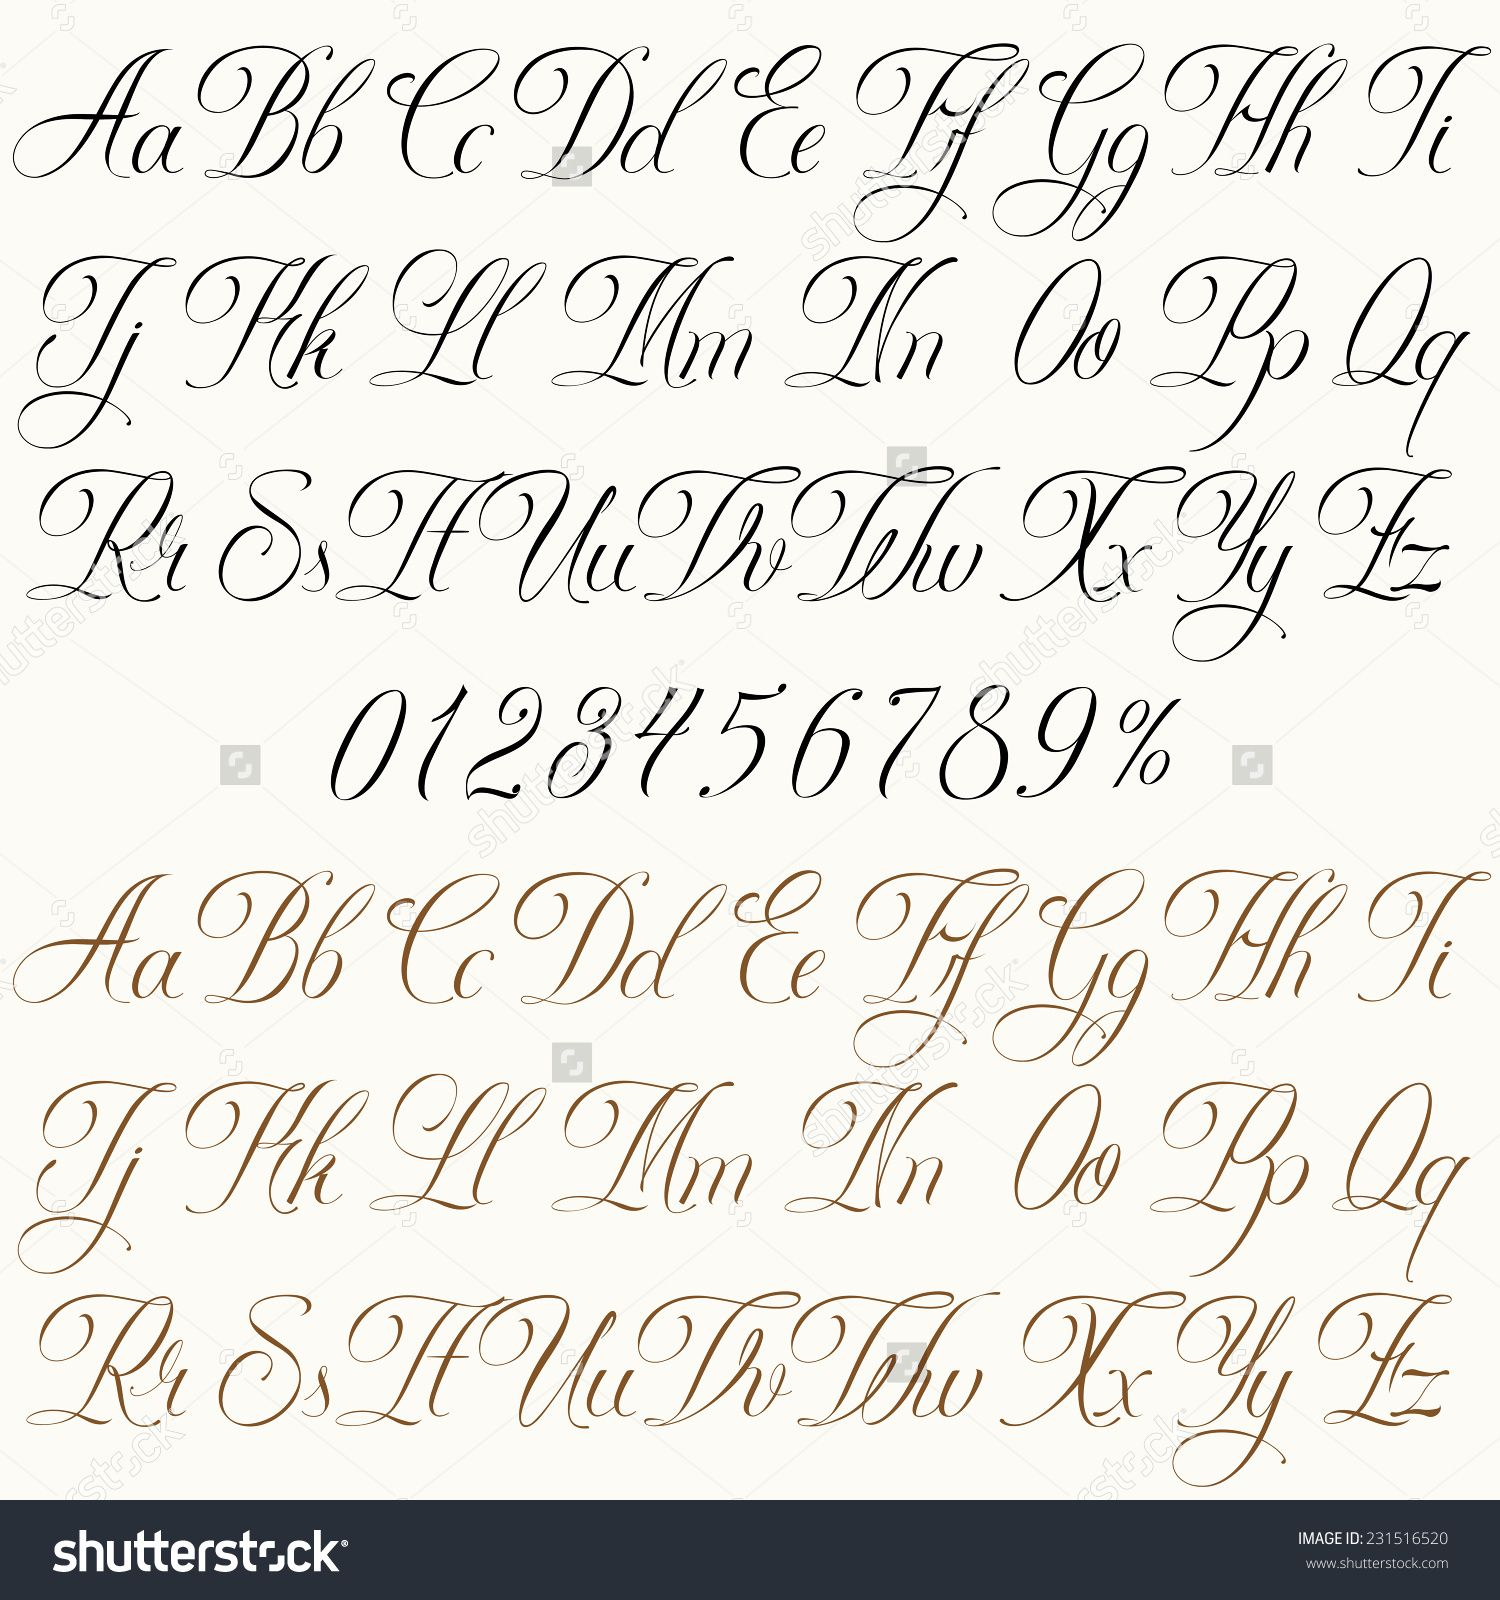 tattoo alphabets - Yahoo Search Results Yahoo Image Search Results ...